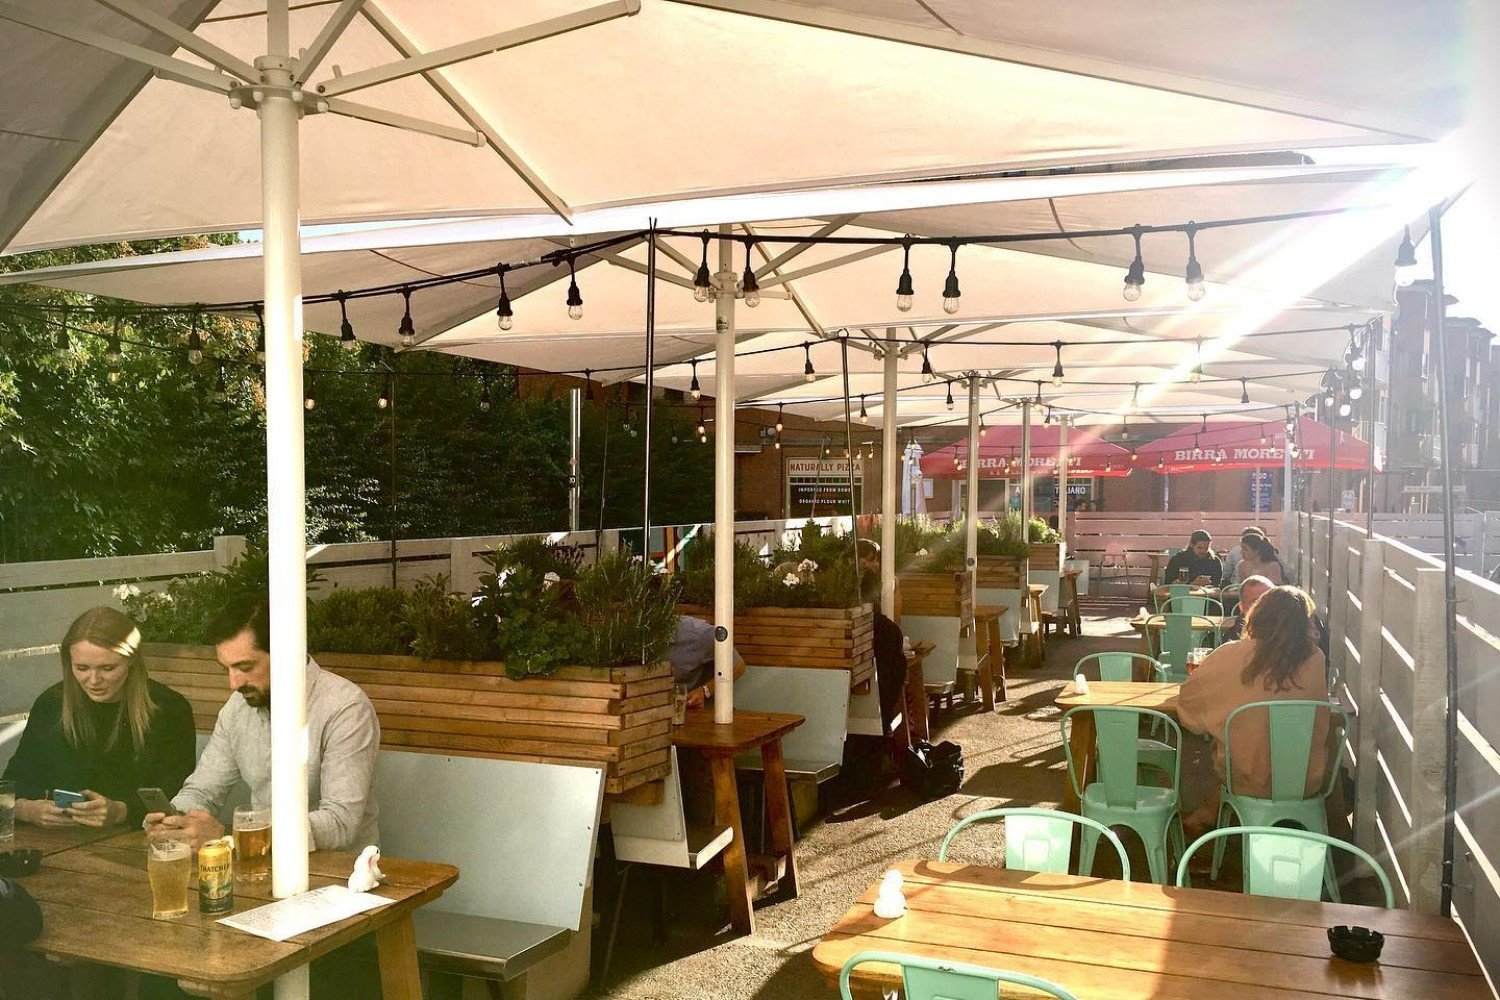 The White Rabbit - Pizza, Pub & Beer Garden in Oxford - Gallery Image 12